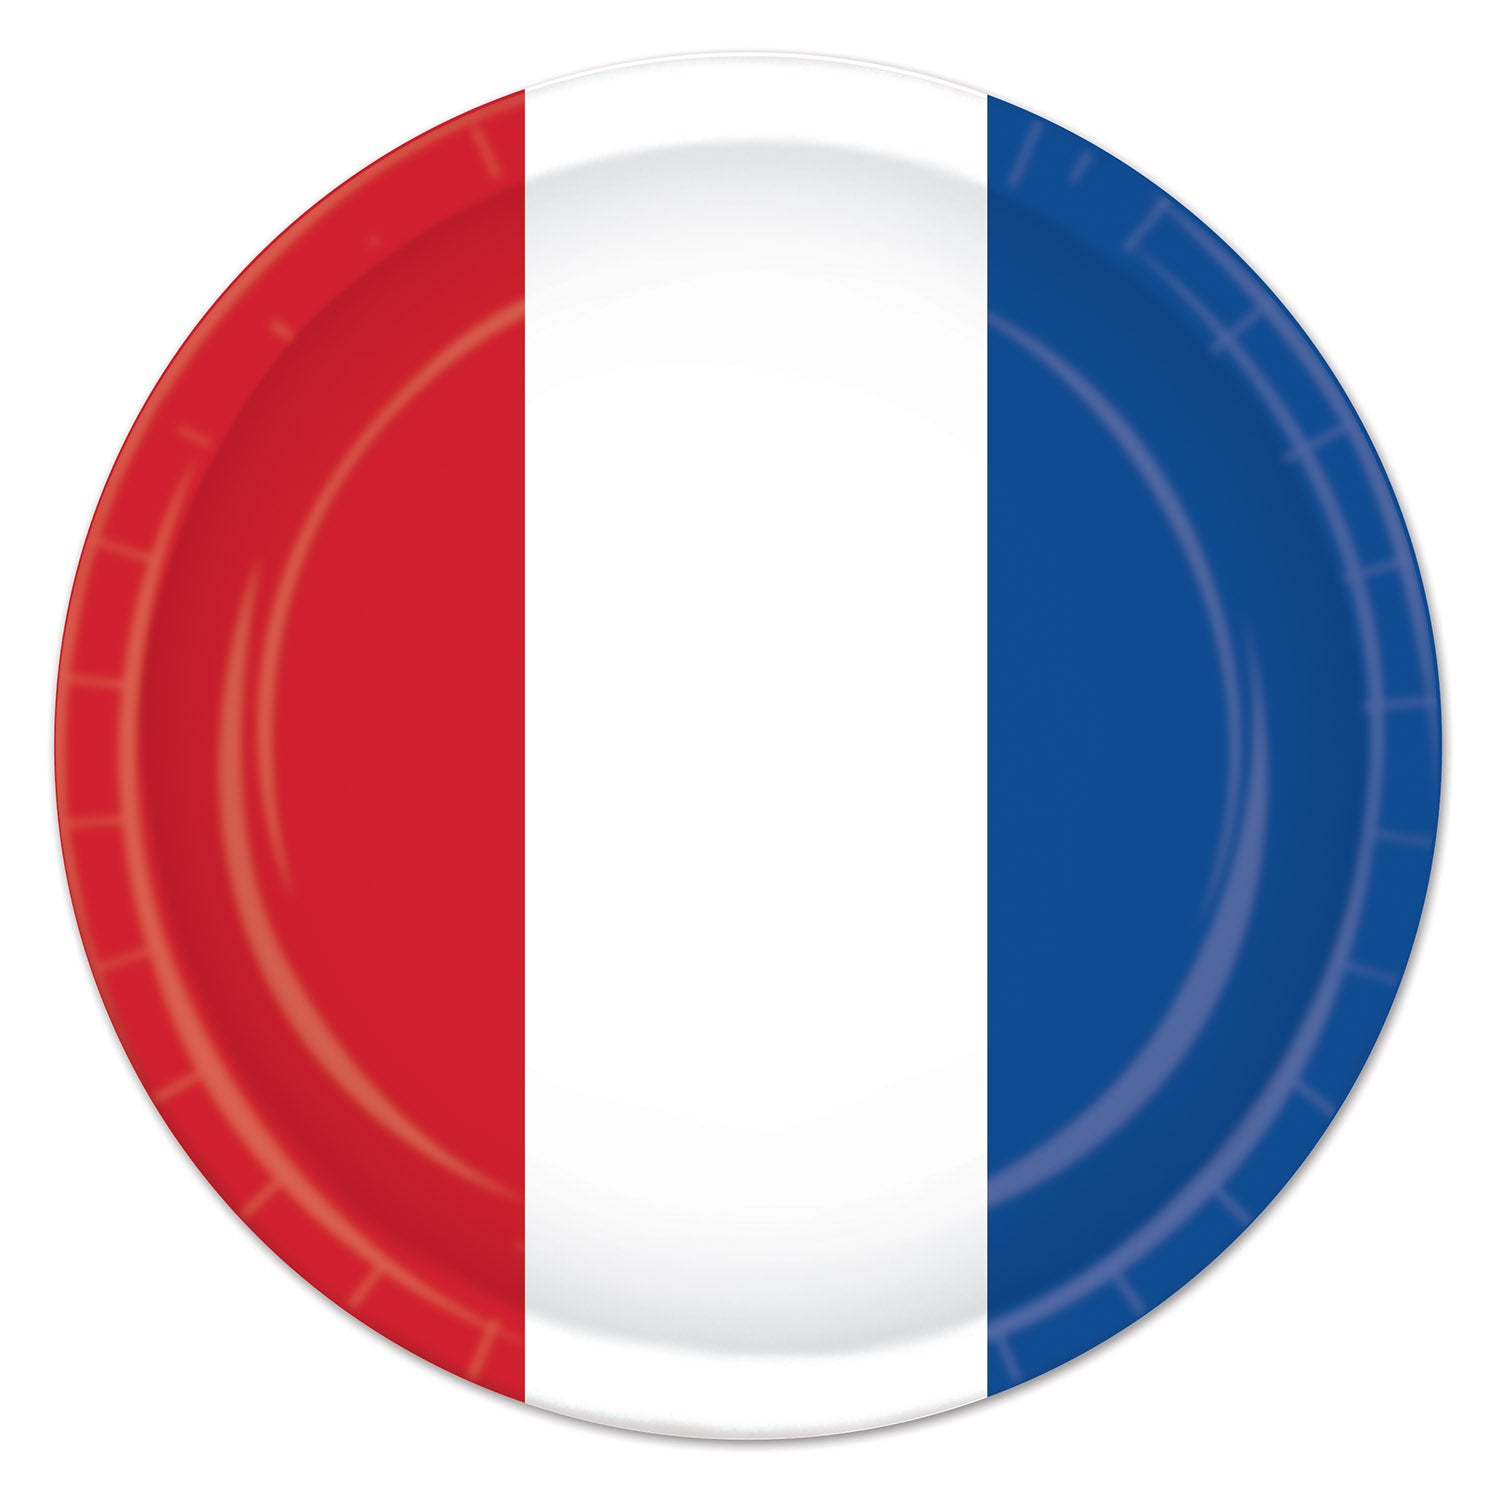 Red White u0026 Blue Plates party supplies decorations The Beistle Company  sc 1 st  Bulk Party Supplies & 12ct) Beistle Red White u0026 Blue Plates - Bulk Party Supplies